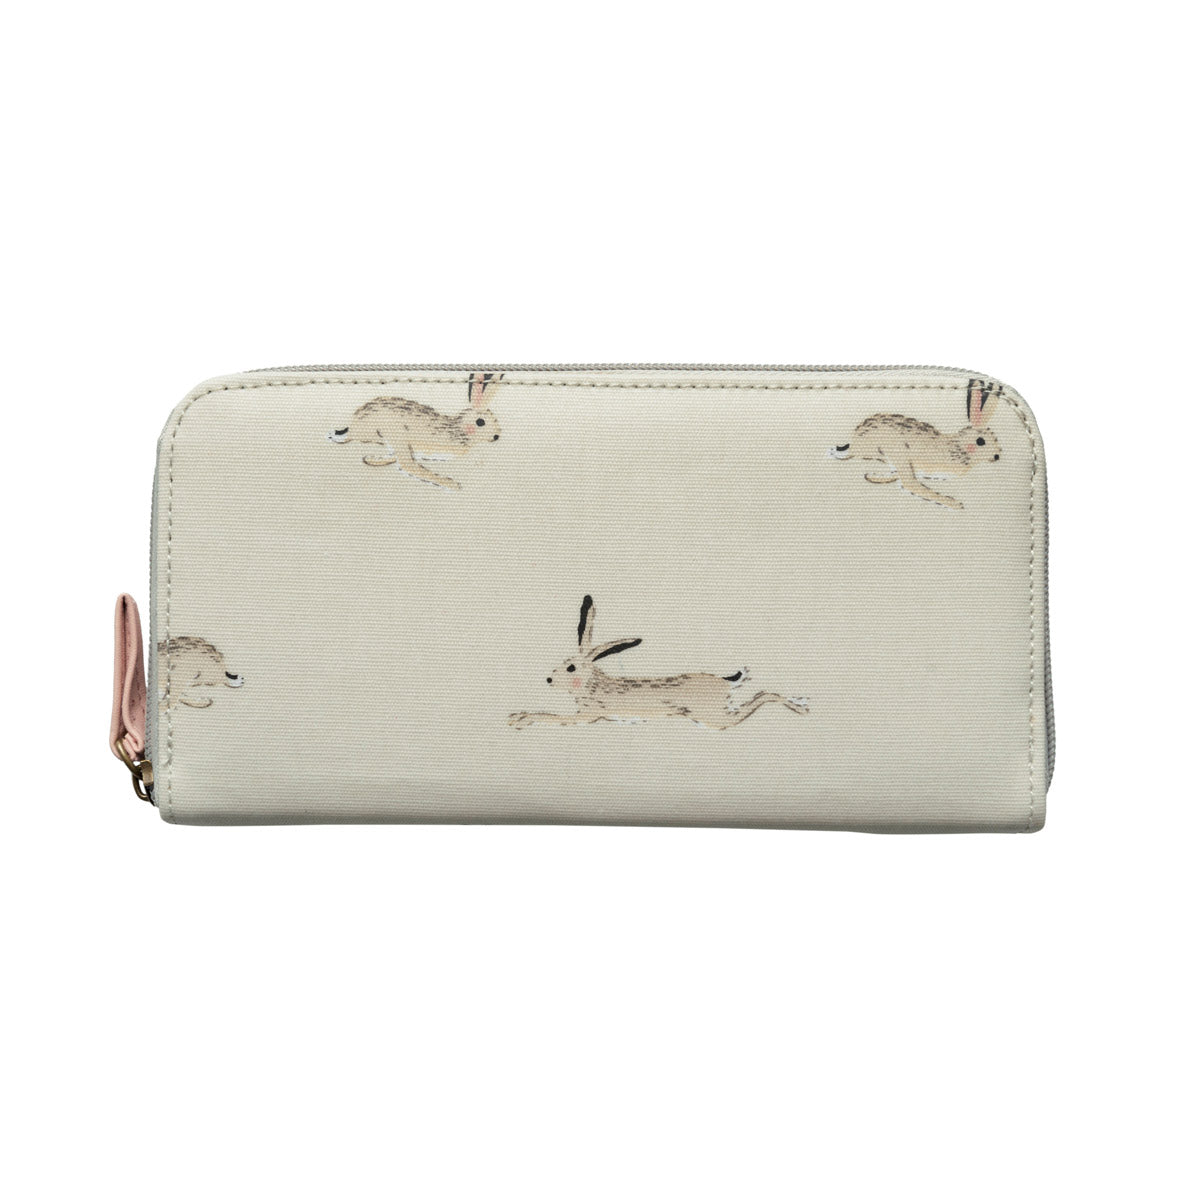 Hare Oilcloth Wallet